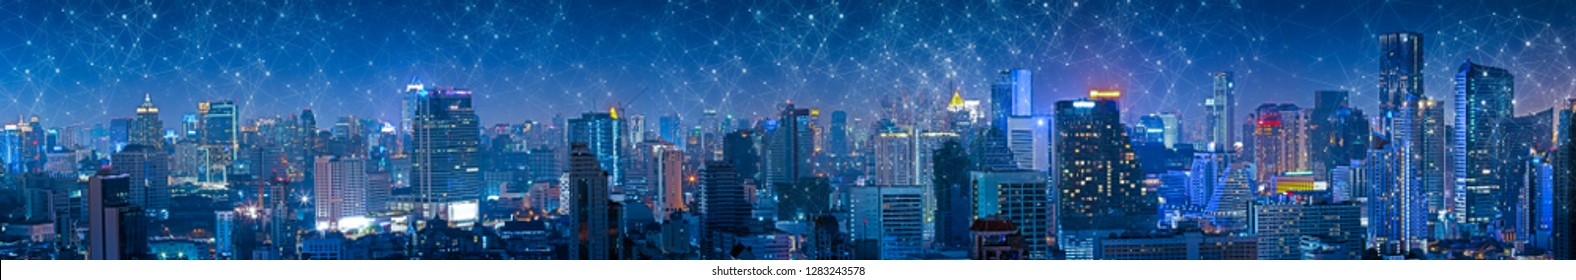 Panoramic building modern business district at night with lines and dots of connection in the sky. Wireless internet network in smart city.